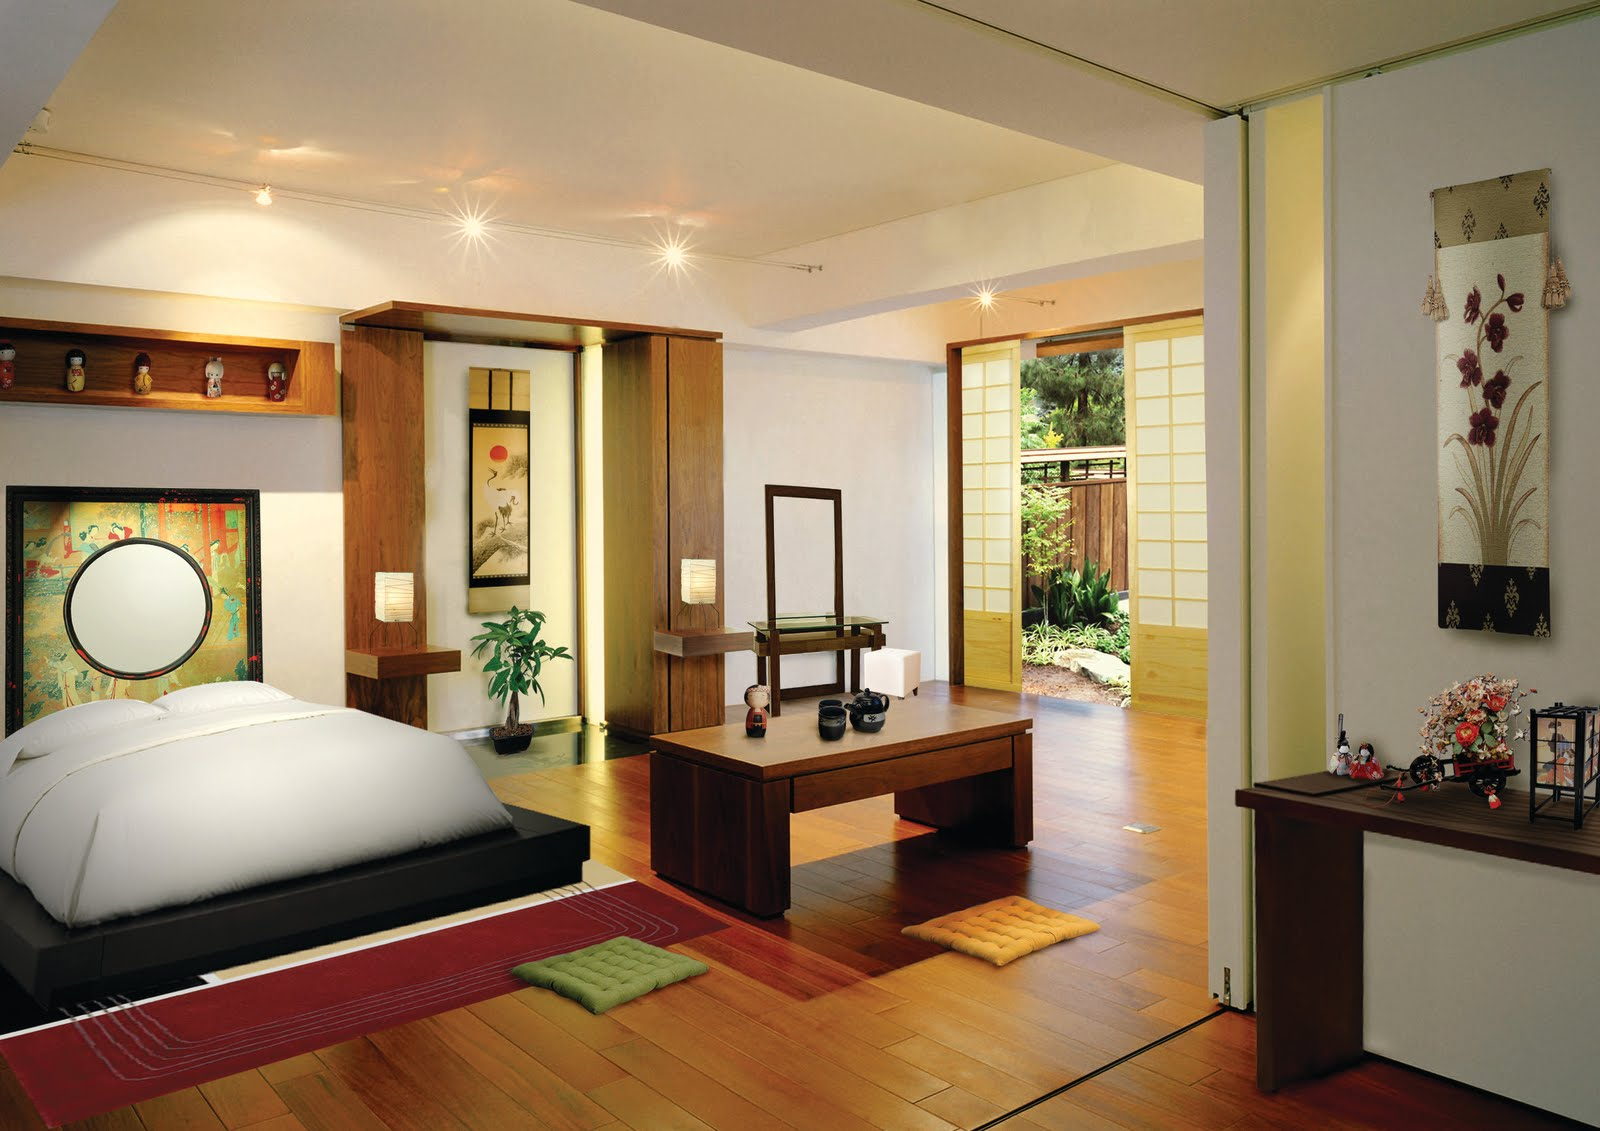 Melokumi japanese style bedroom design for Asian home decor